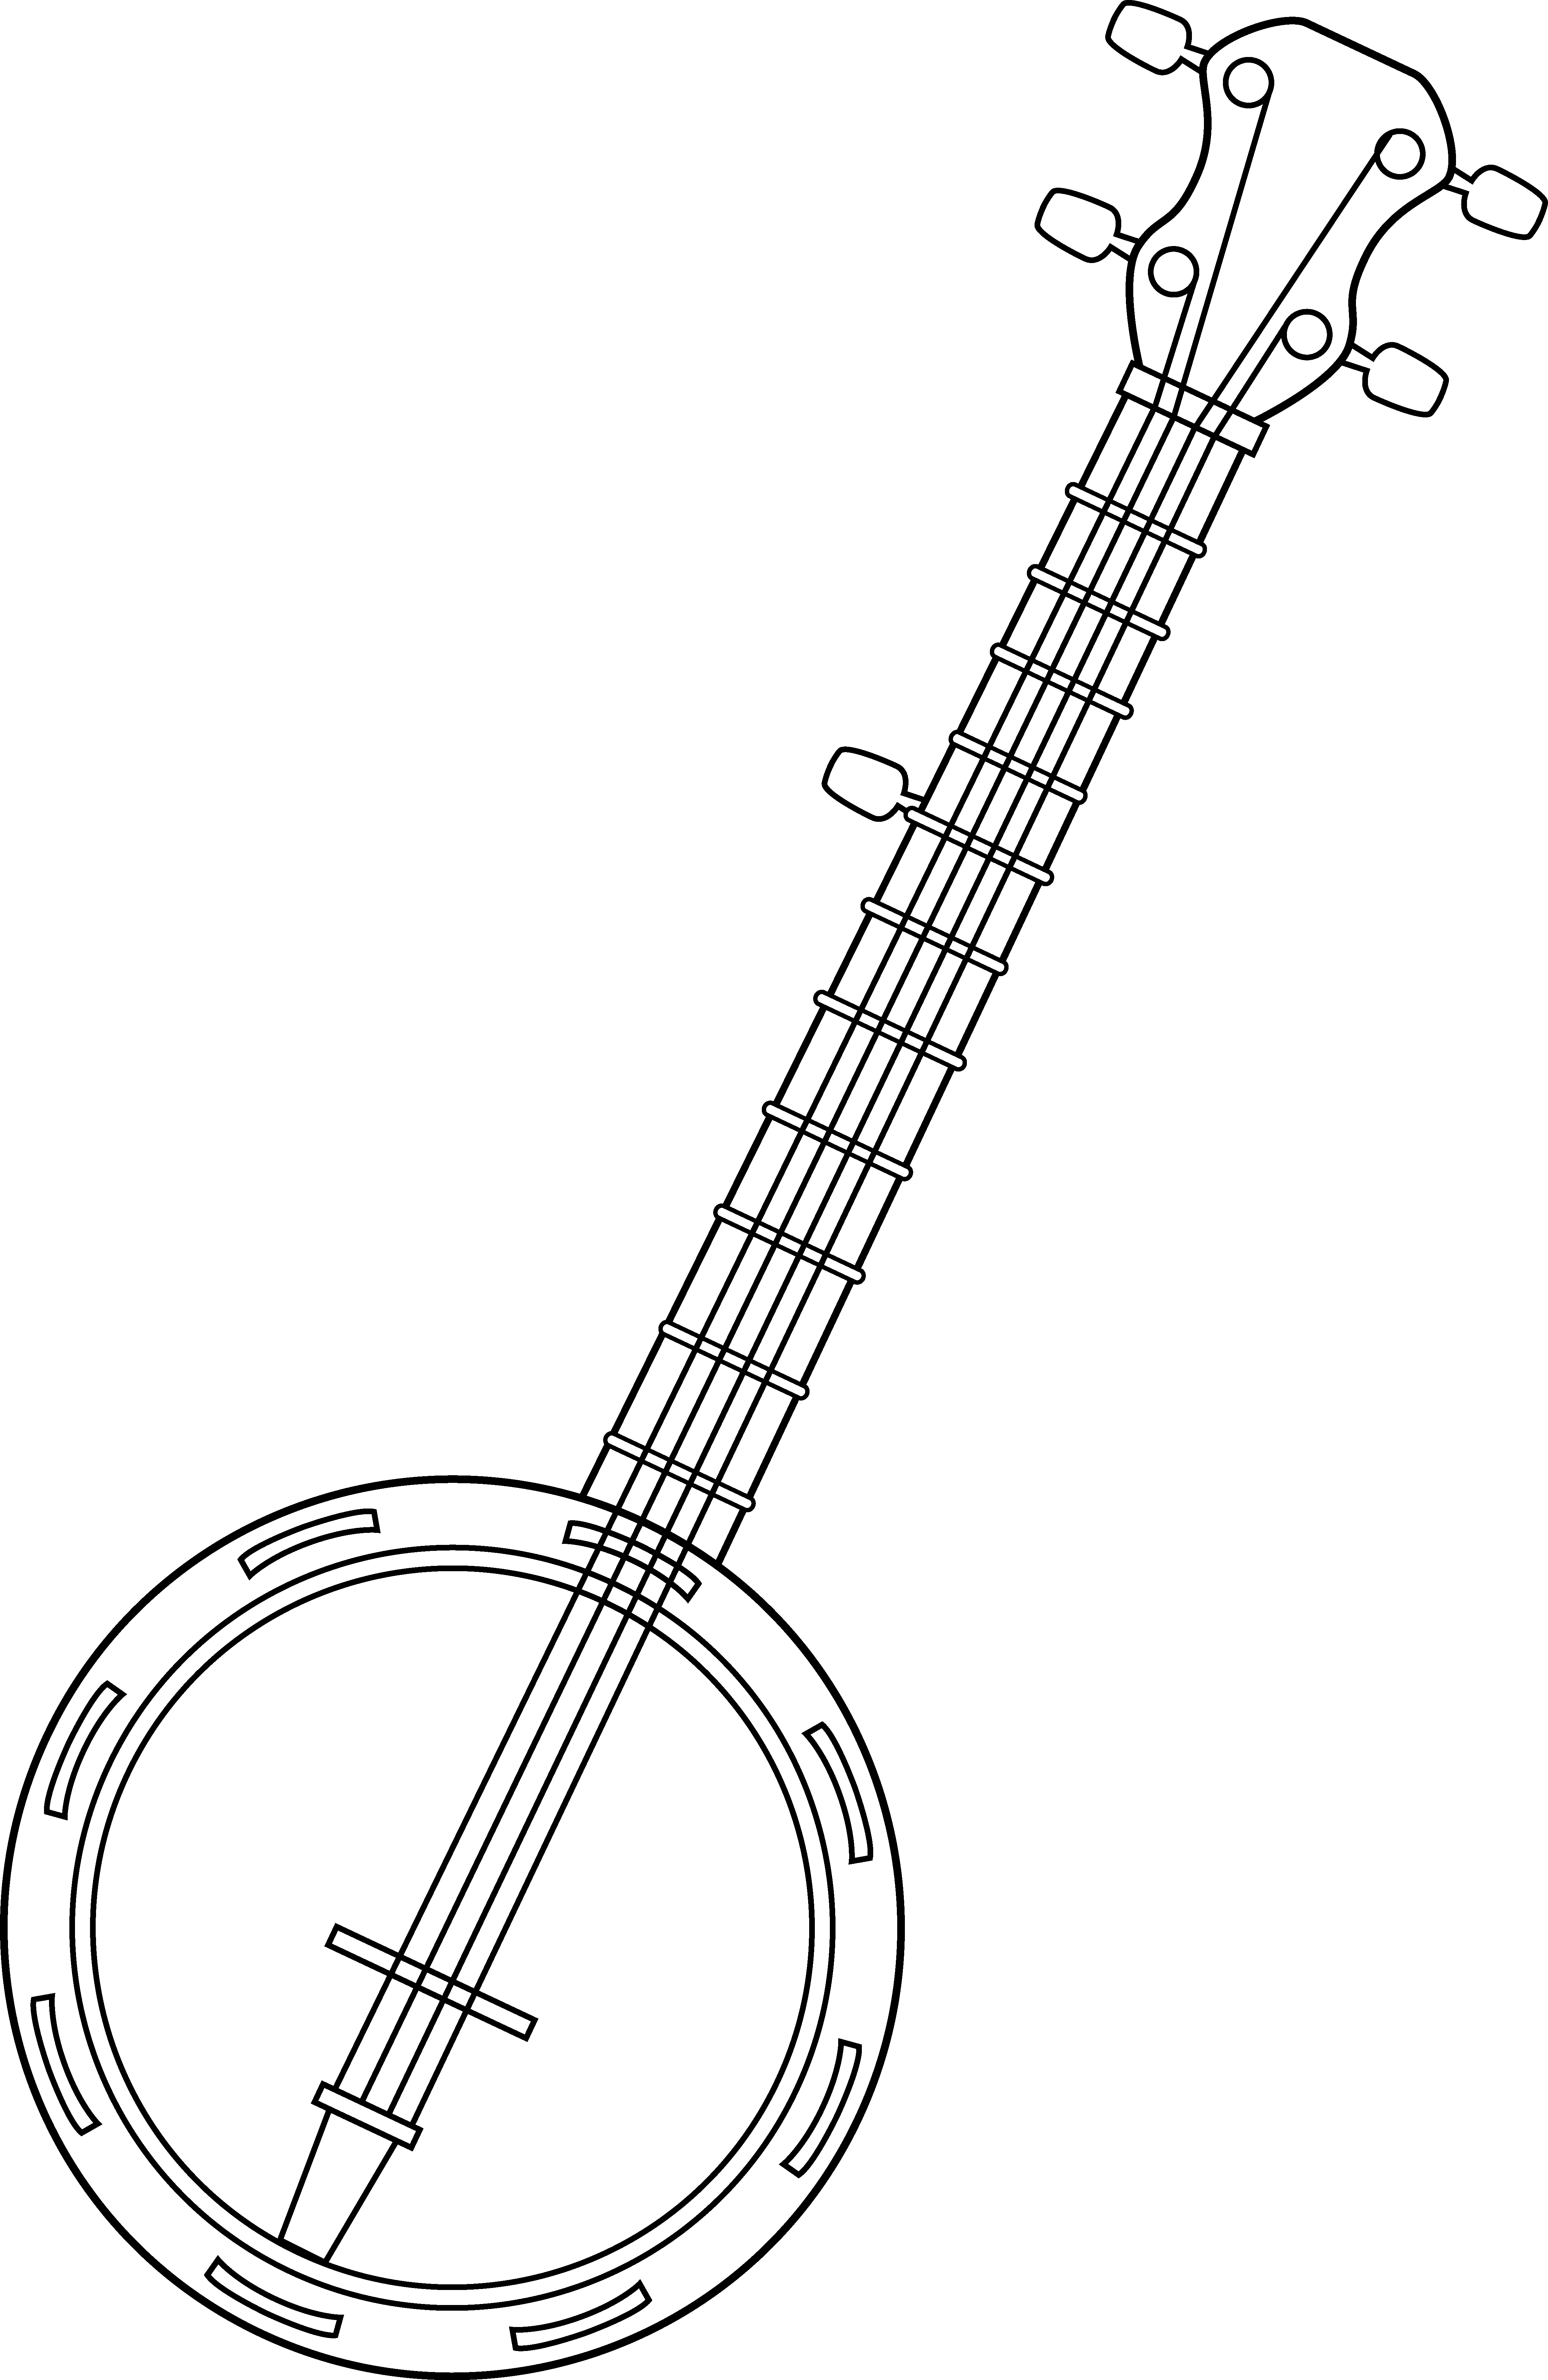 clip art royalty free library Colorable line art free. Banjo clipart